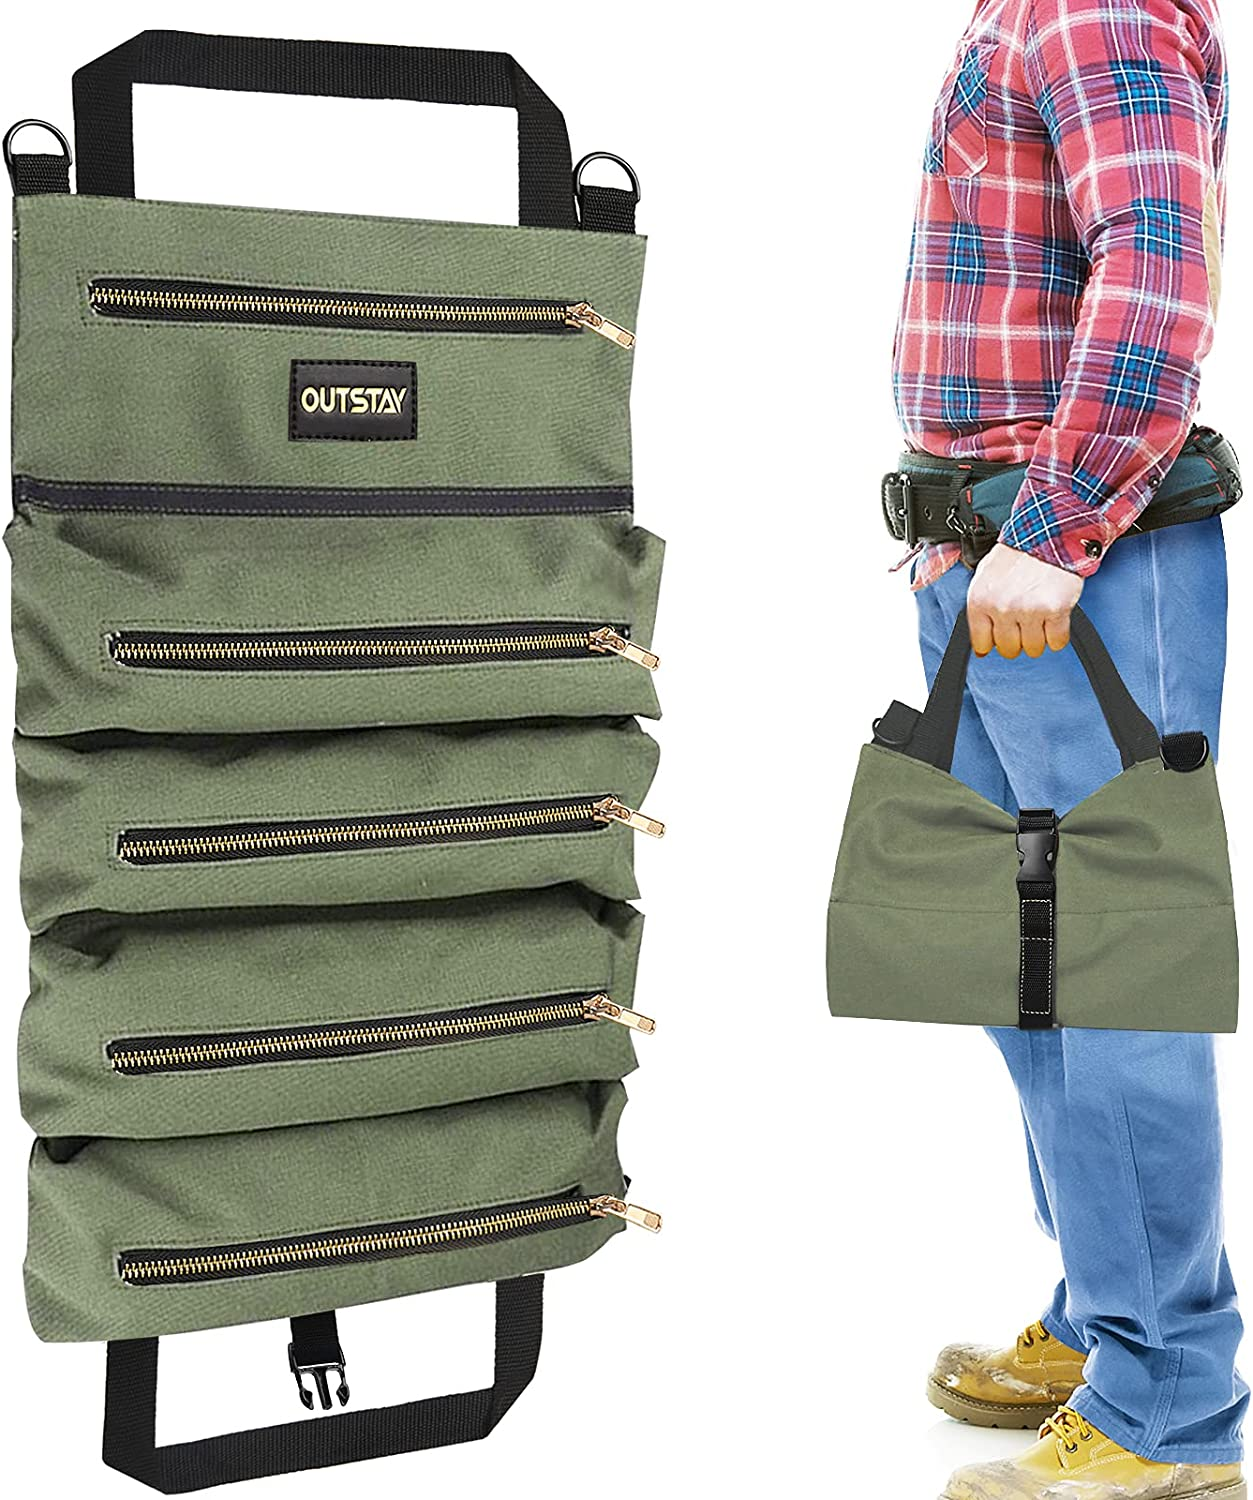 Canvas Roll Up Tools Bag Max 90% OFF Fashionable Storage Organizer Multi-Purpose Yuede